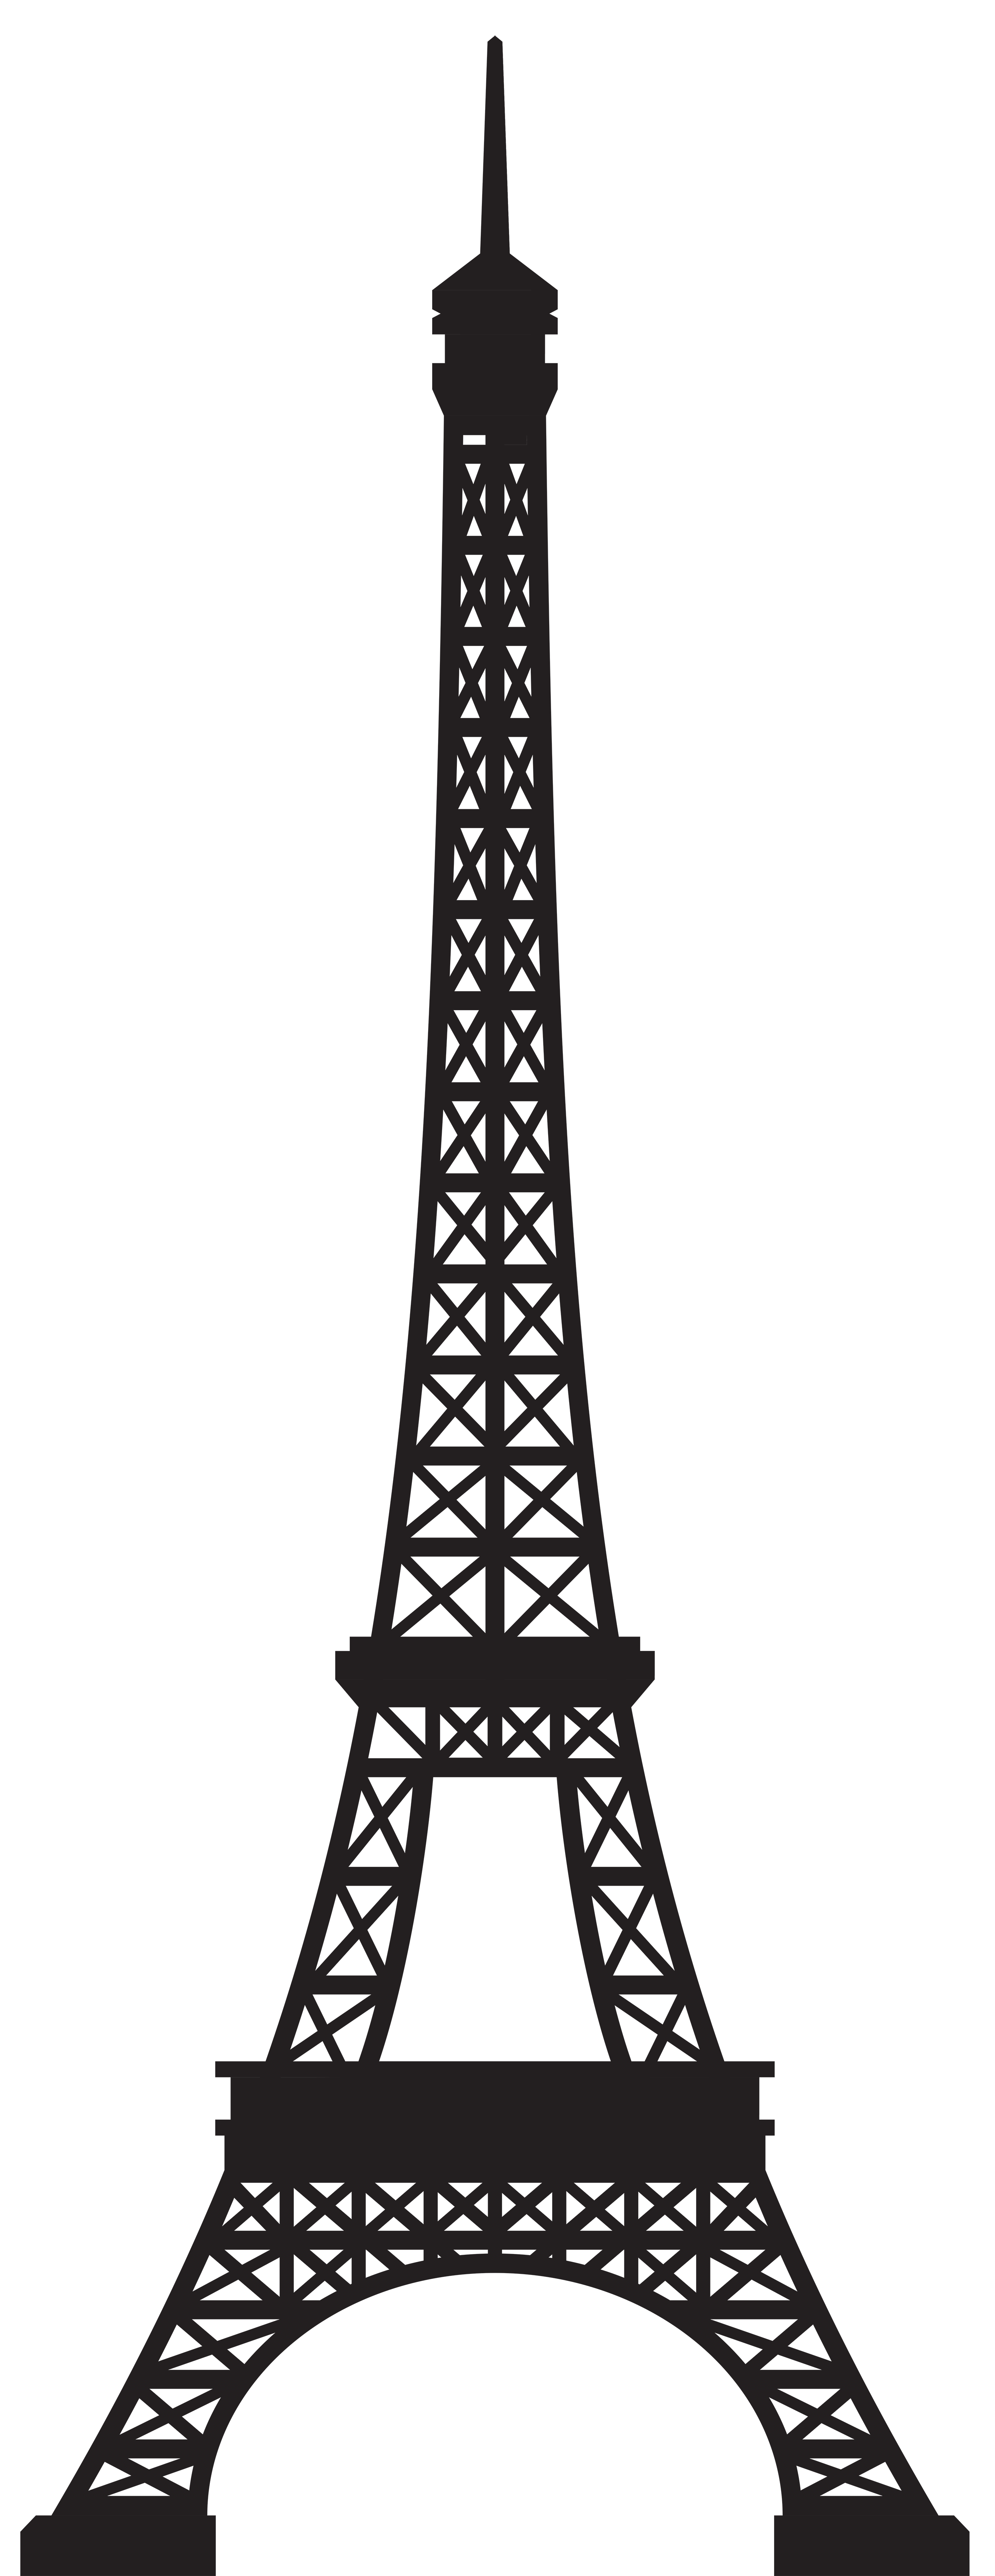 Eiffel tower clipart free picture royalty free library Free Eiffel Tower Clip Art, Download Free Clip Art, Free Clip Art on ... picture royalty free library